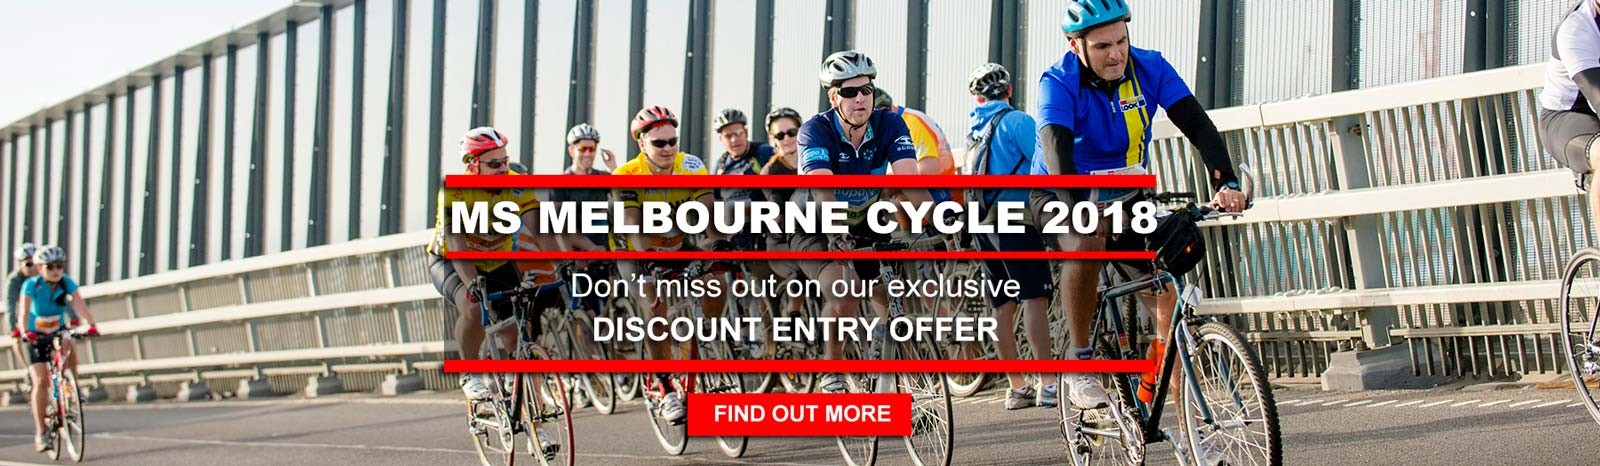 discount entry offer